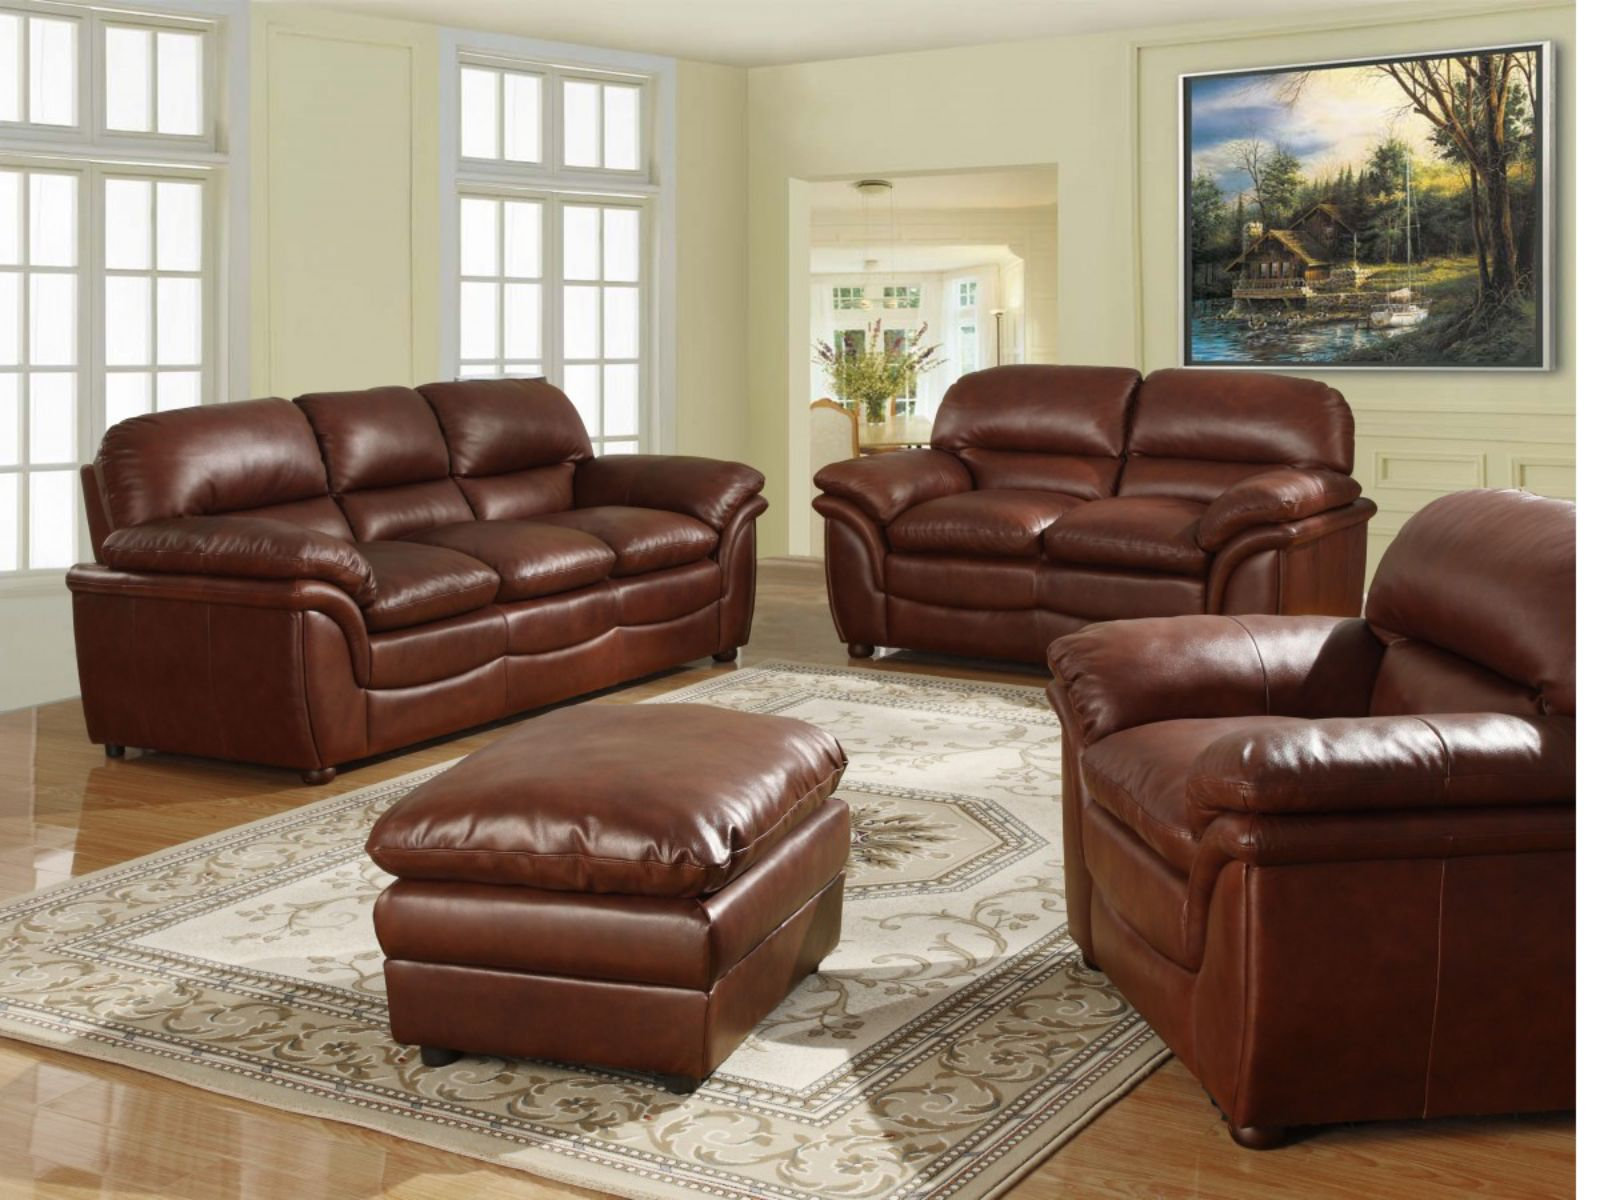 Fernando 2 Seater Sofa Settee Leather Available In Brown Soft Leather